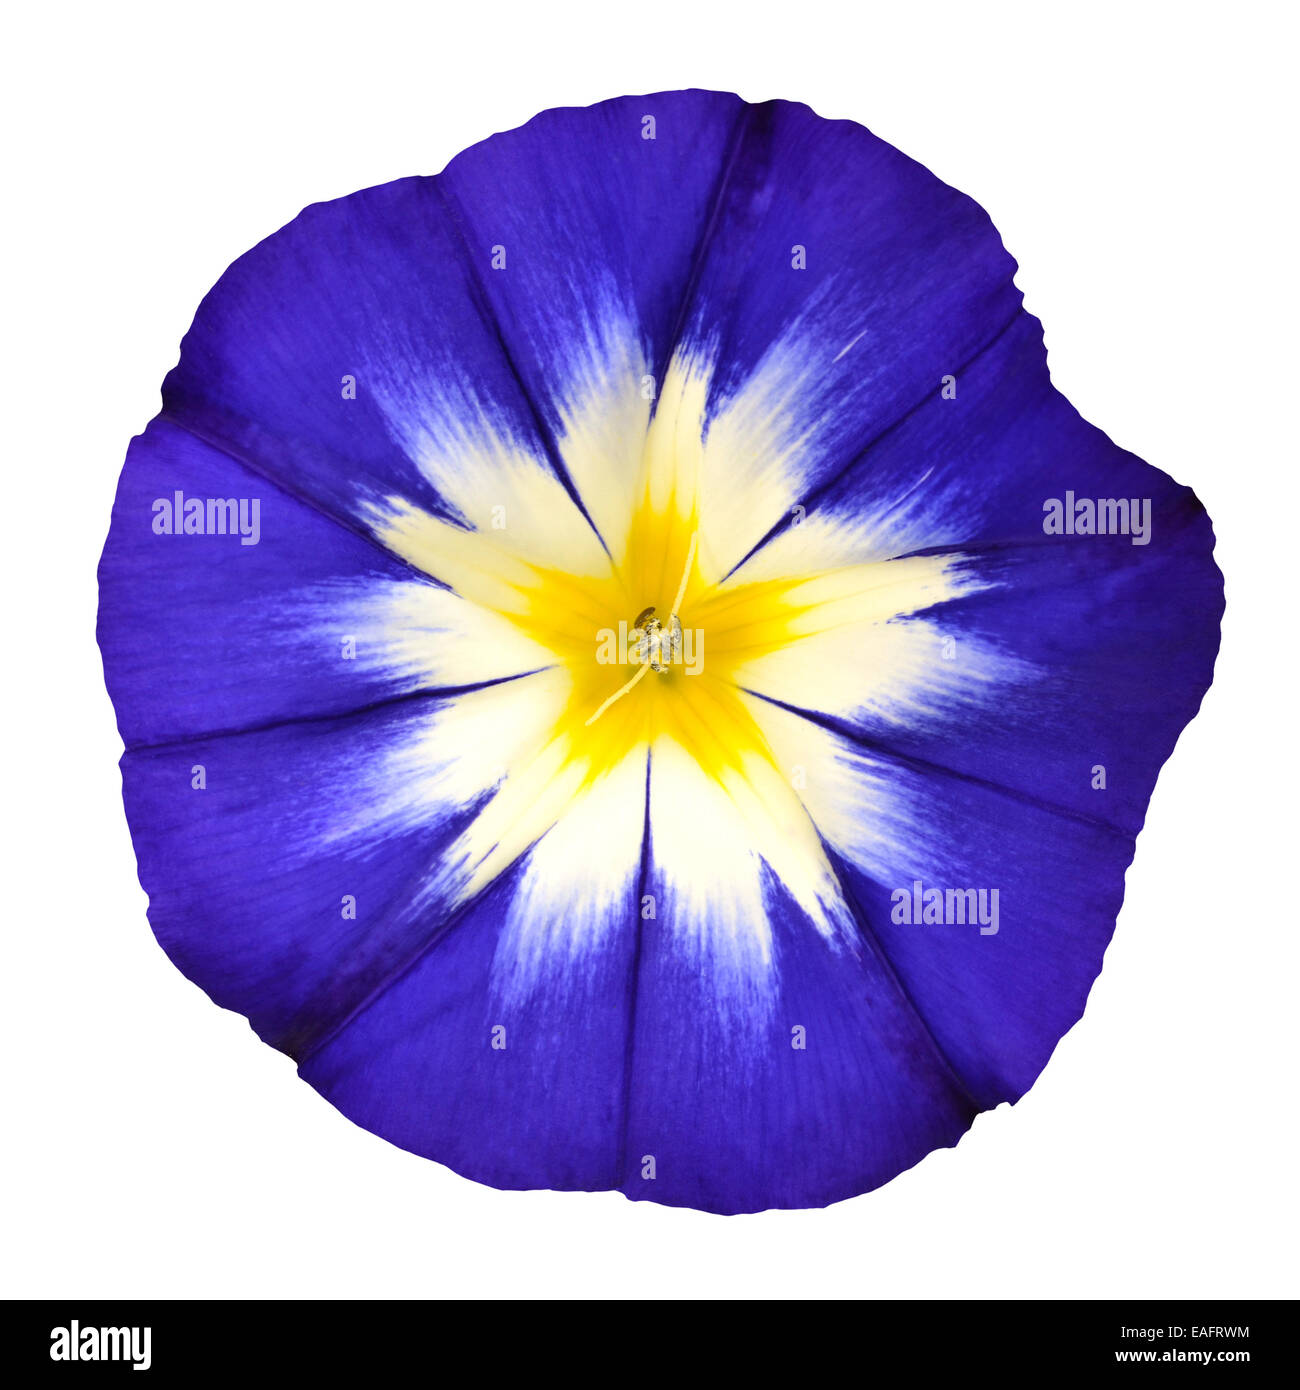 Blue Flower with White Yellow Star Shaped Center Isolated on White ...